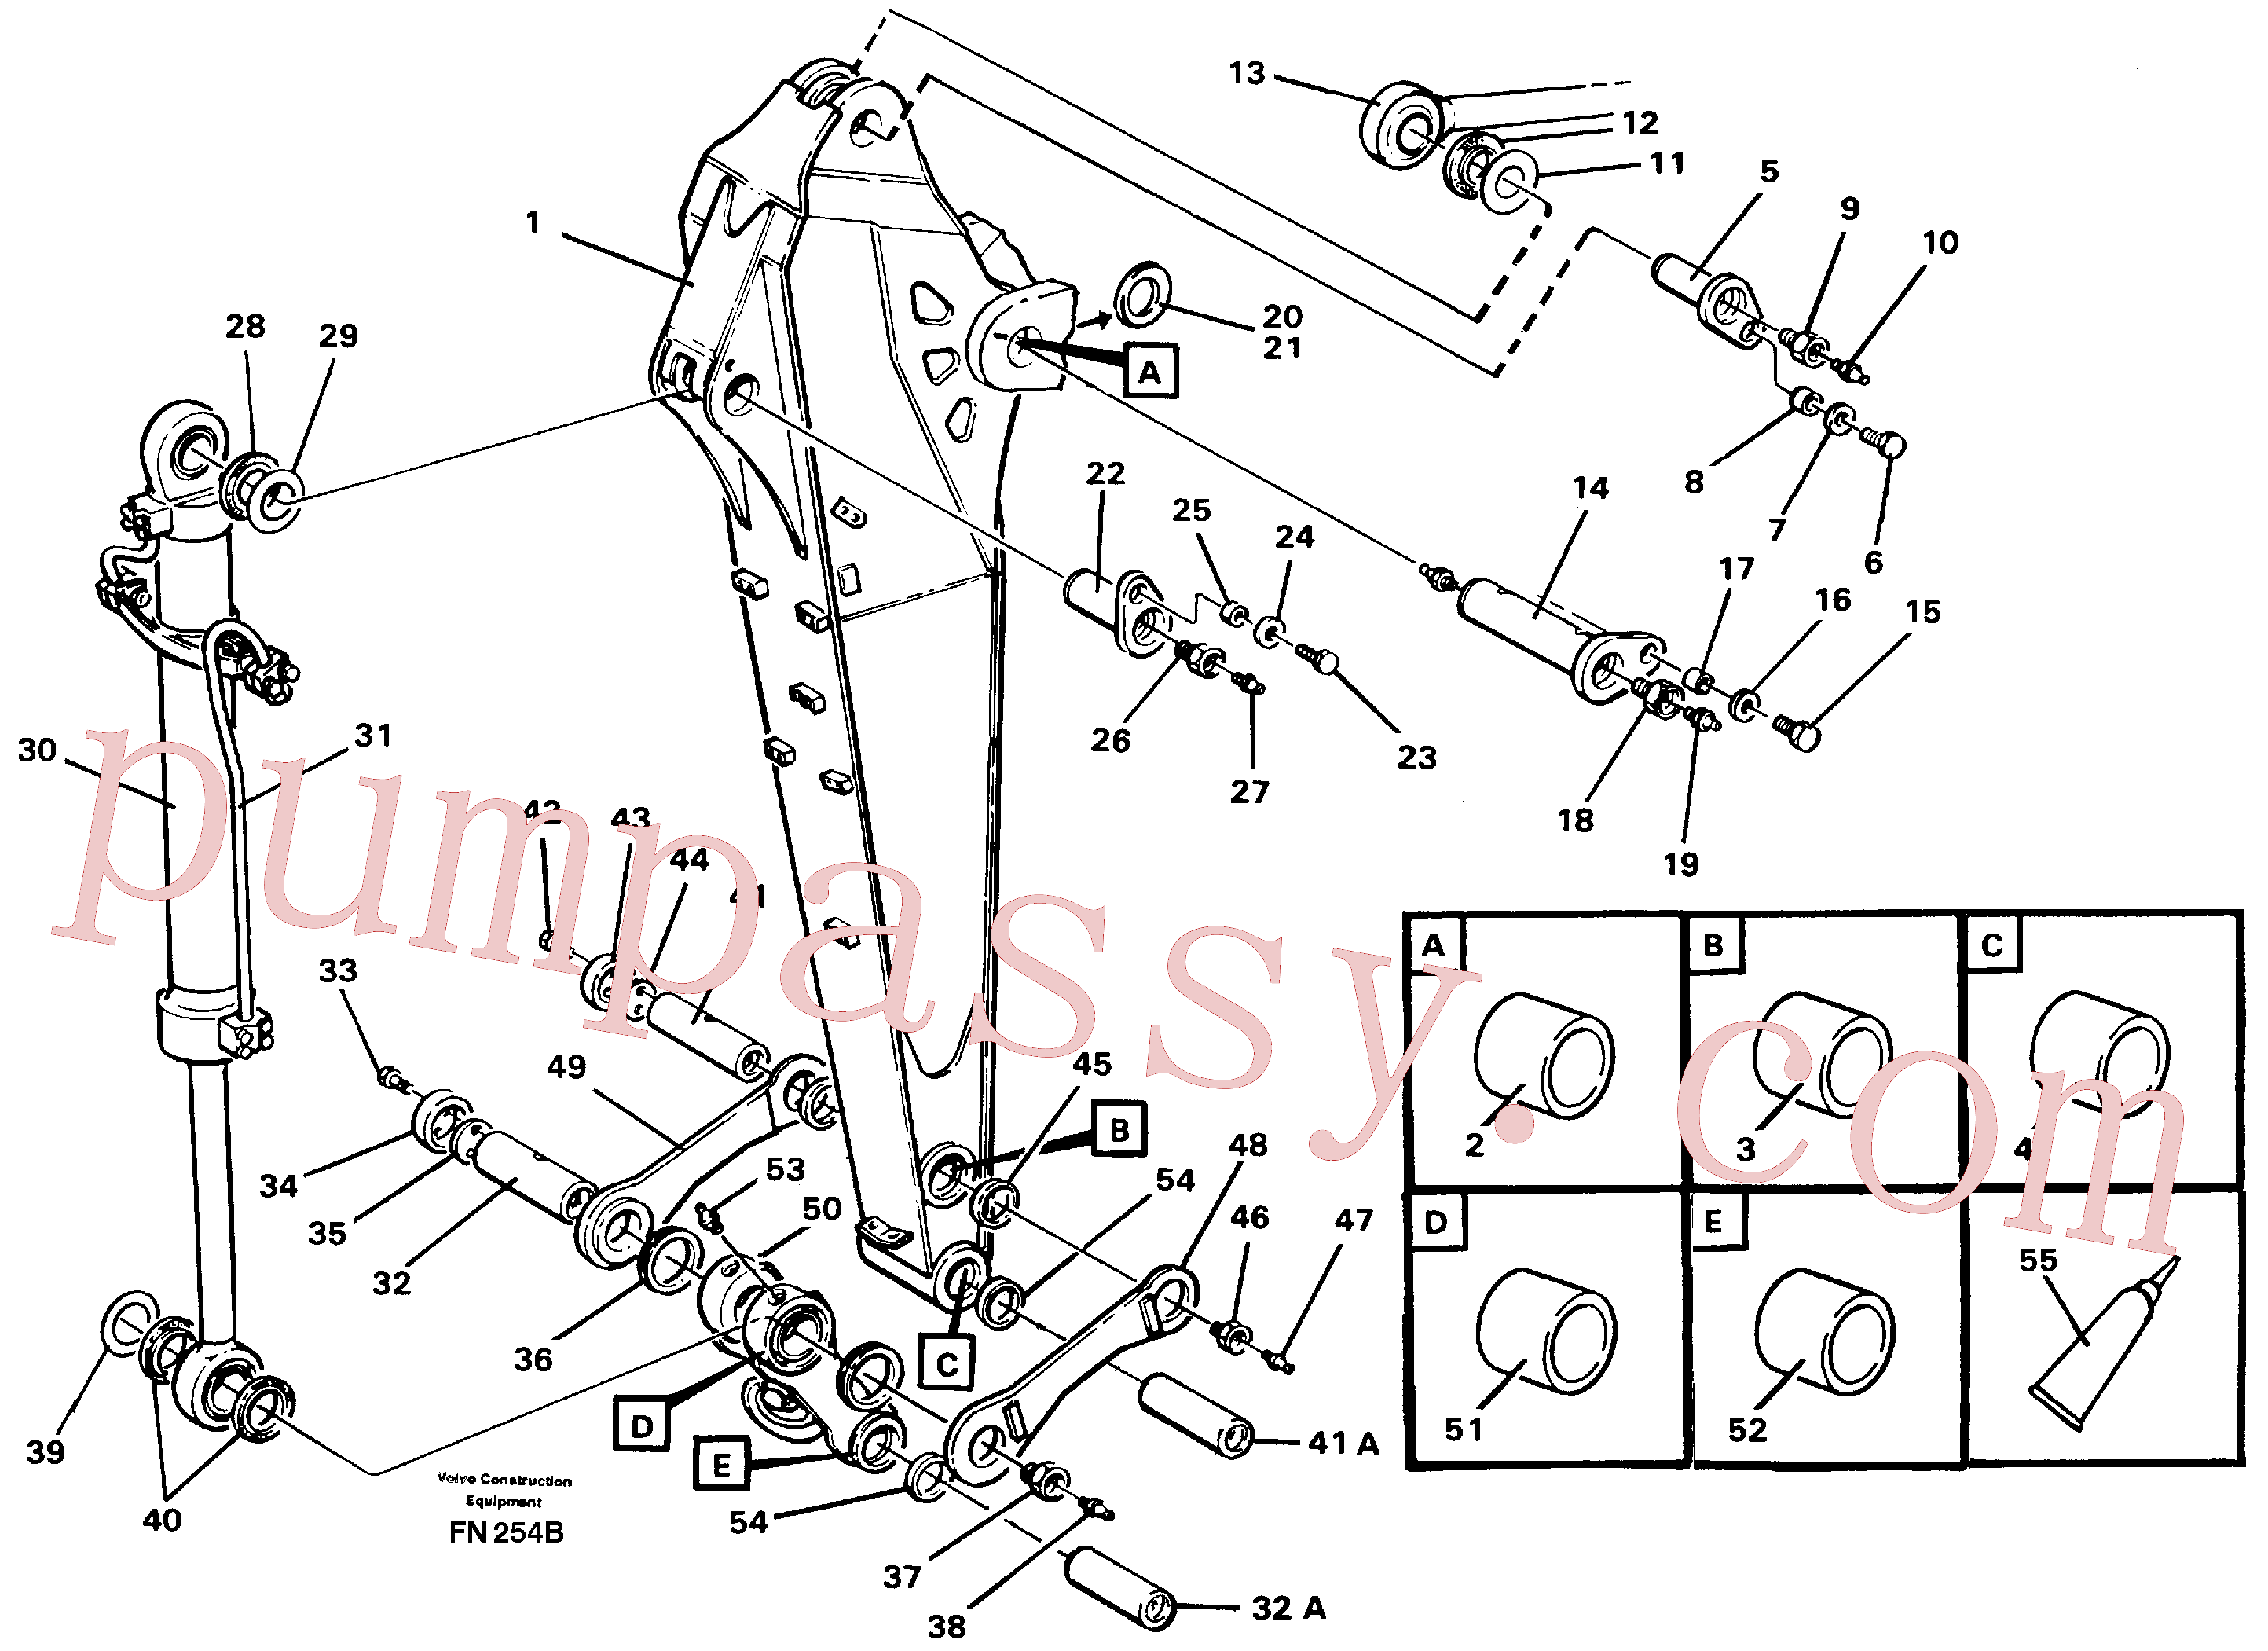 VOE14014630 for Volvo Dipper arm with connections, 2.0 m/2.4 m(FN254B assembly)